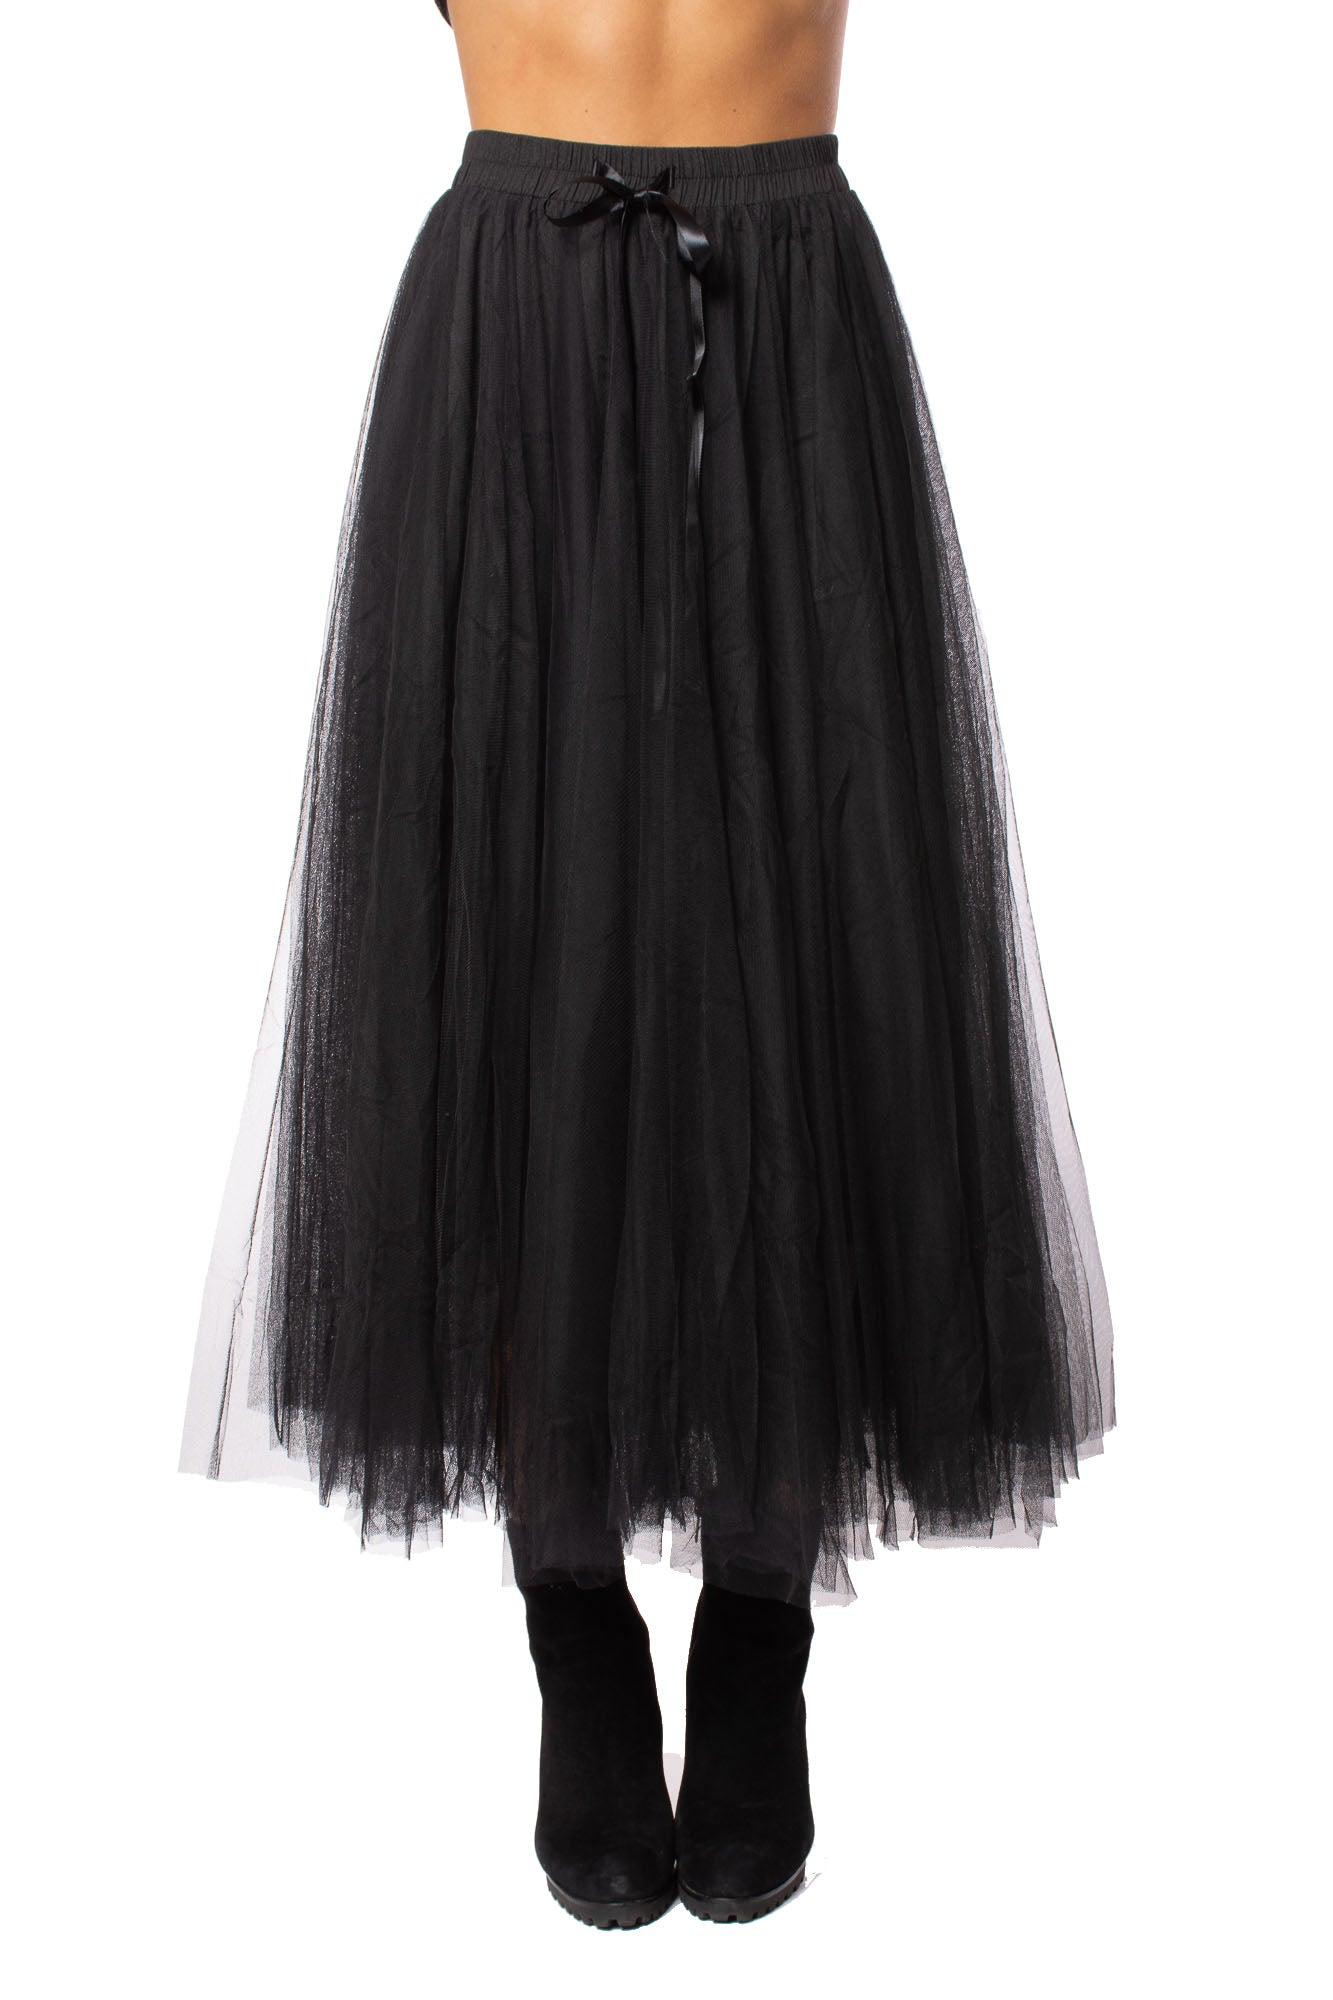 Elan - Tulle Skirt (TU4074, Black)